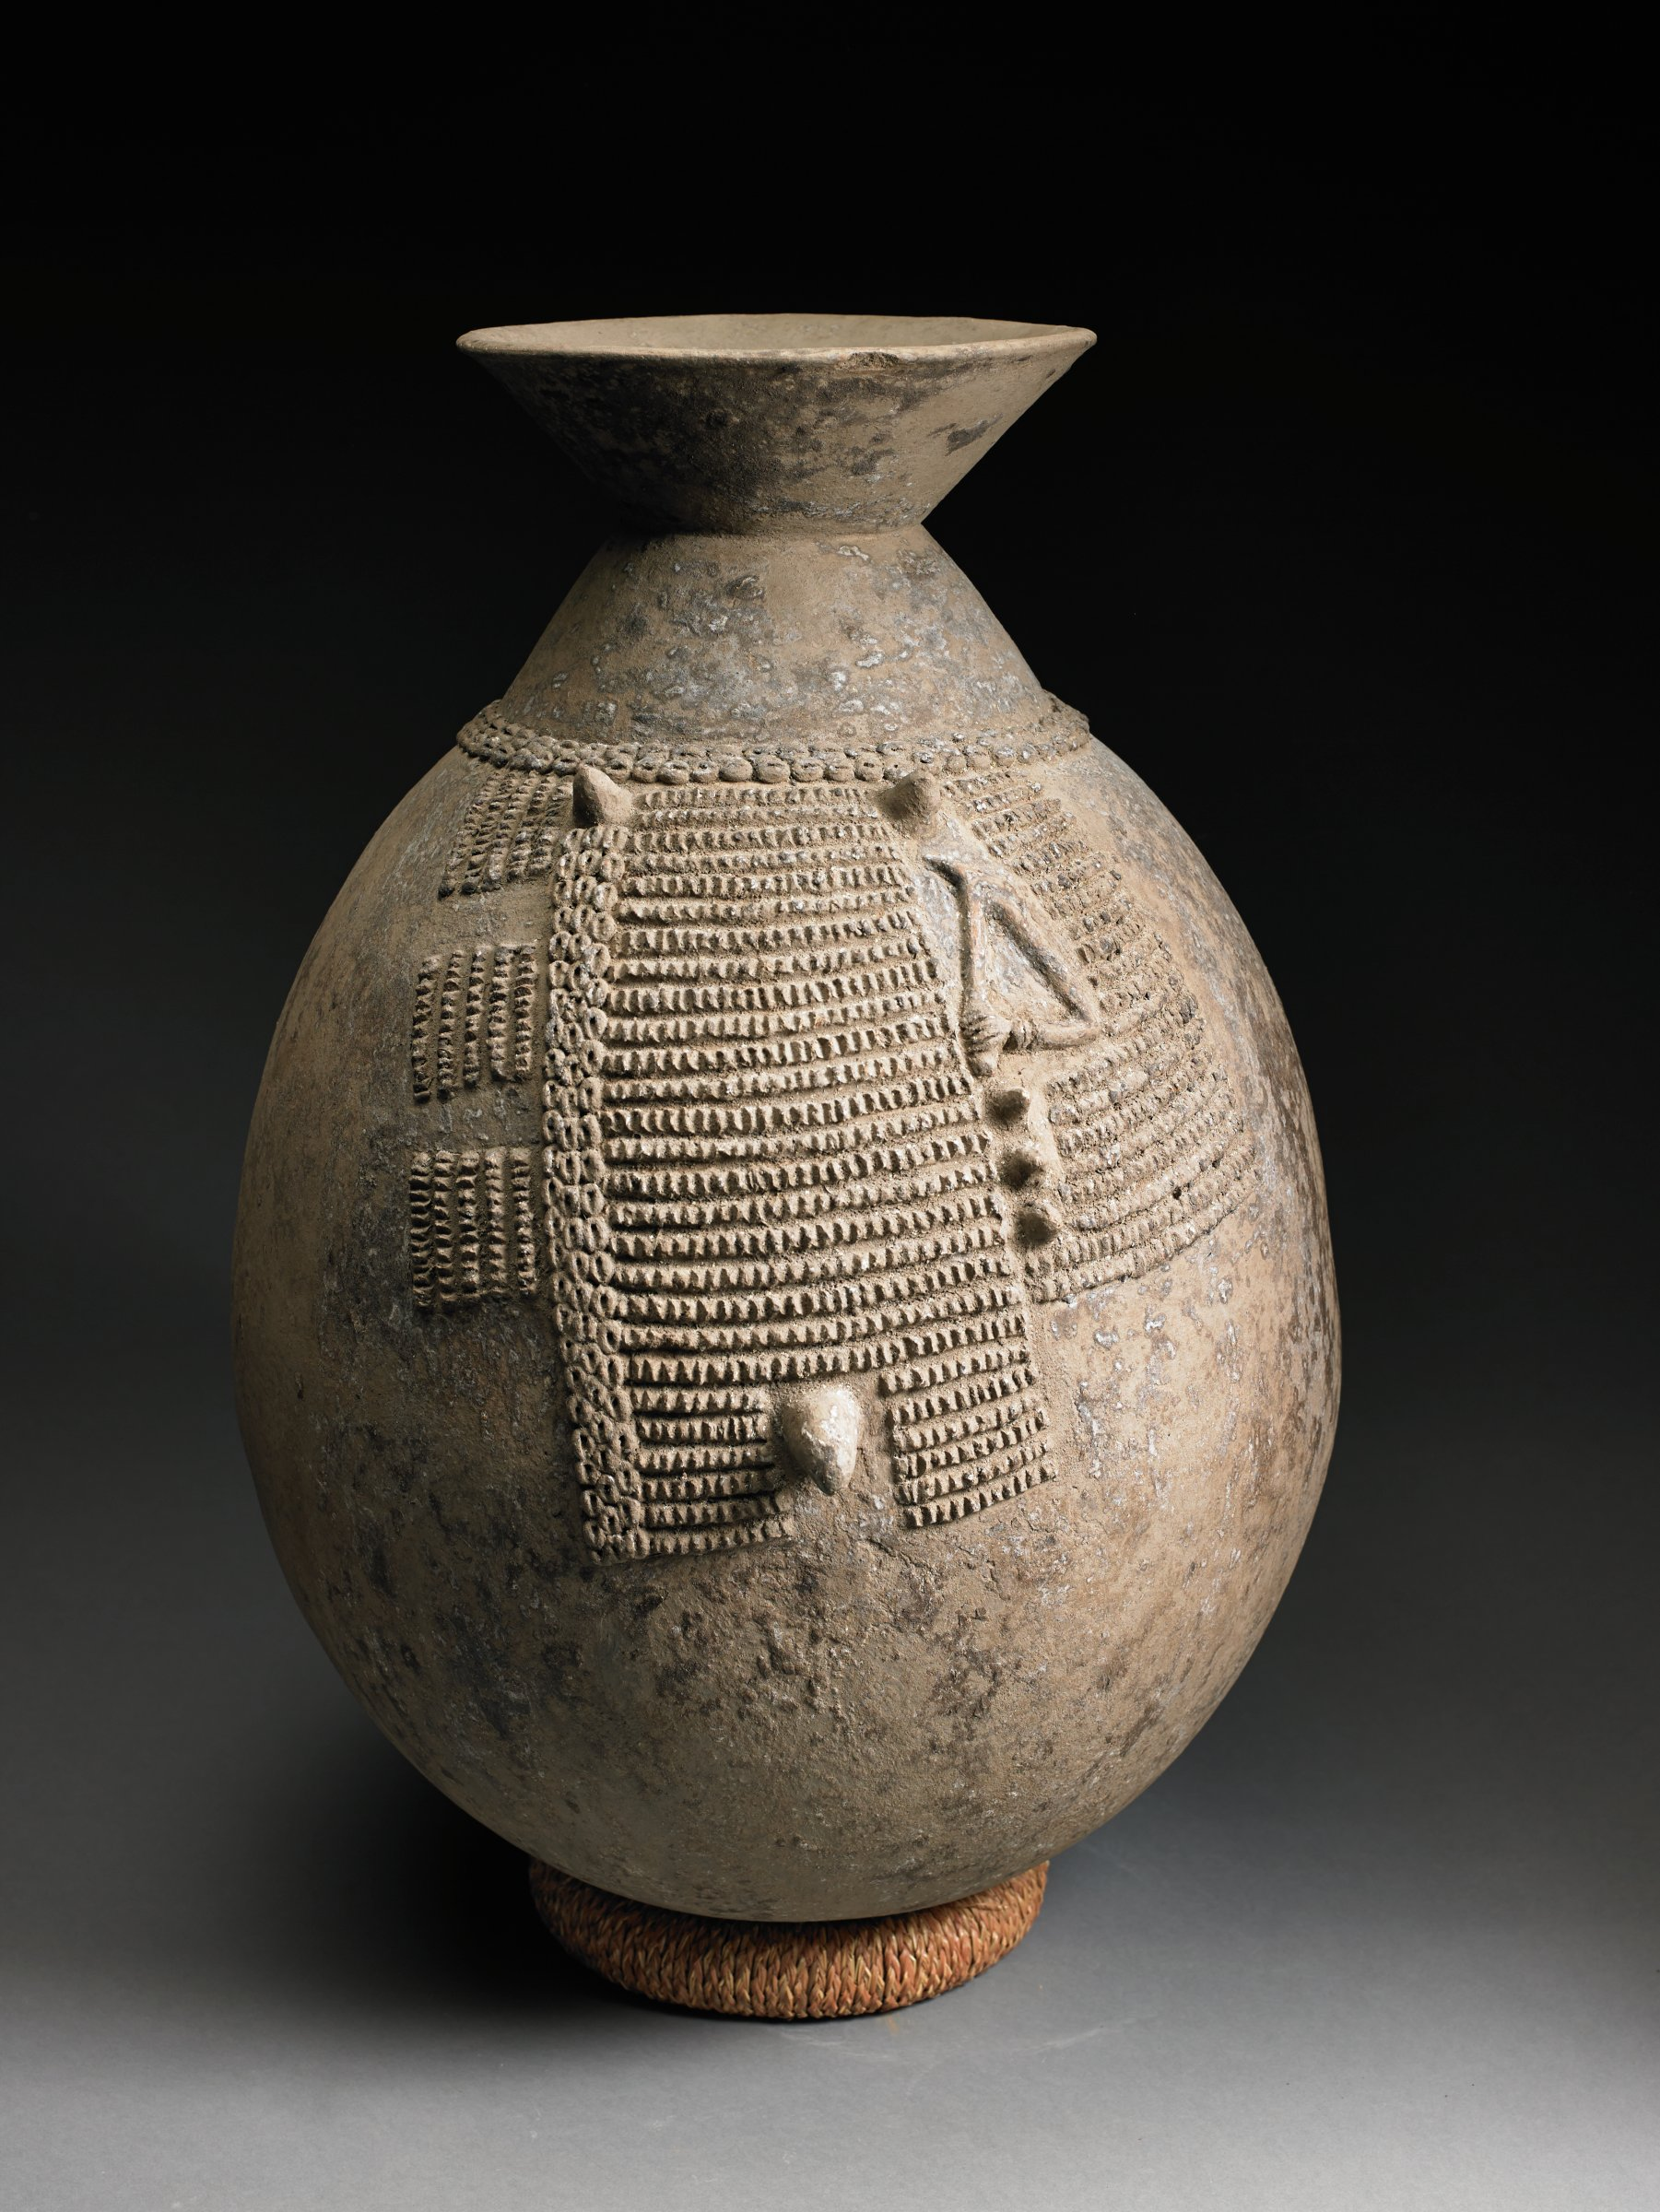 Brown, ovoid vessel has narrow neck and rim that flares at an angle. Body has rectangular sections of raised bumps, possibly breasts and umbilicus, and appliqued bent arm holding tool.